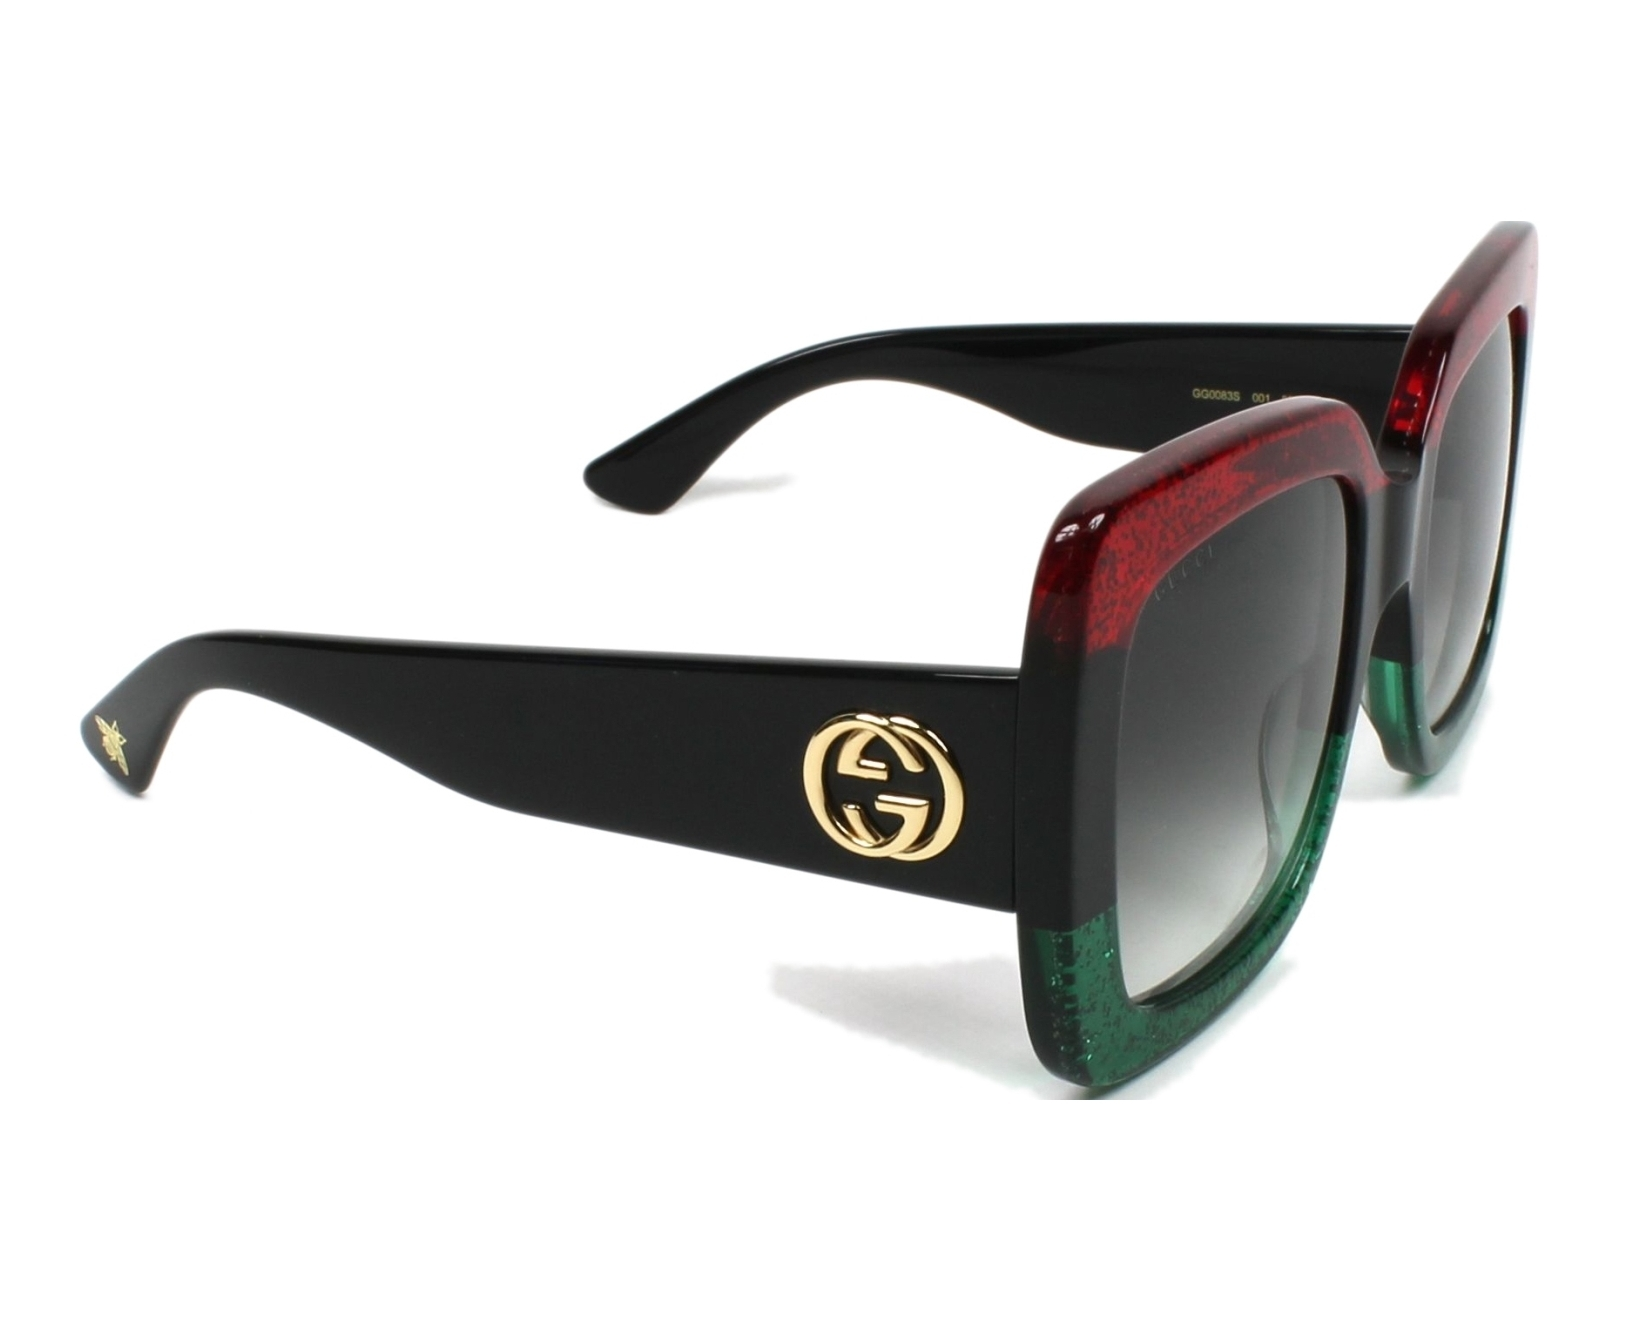 Sunglasses Gucci GG-0083-S 001 55-24 Red Black side view c259c1b7b8a5